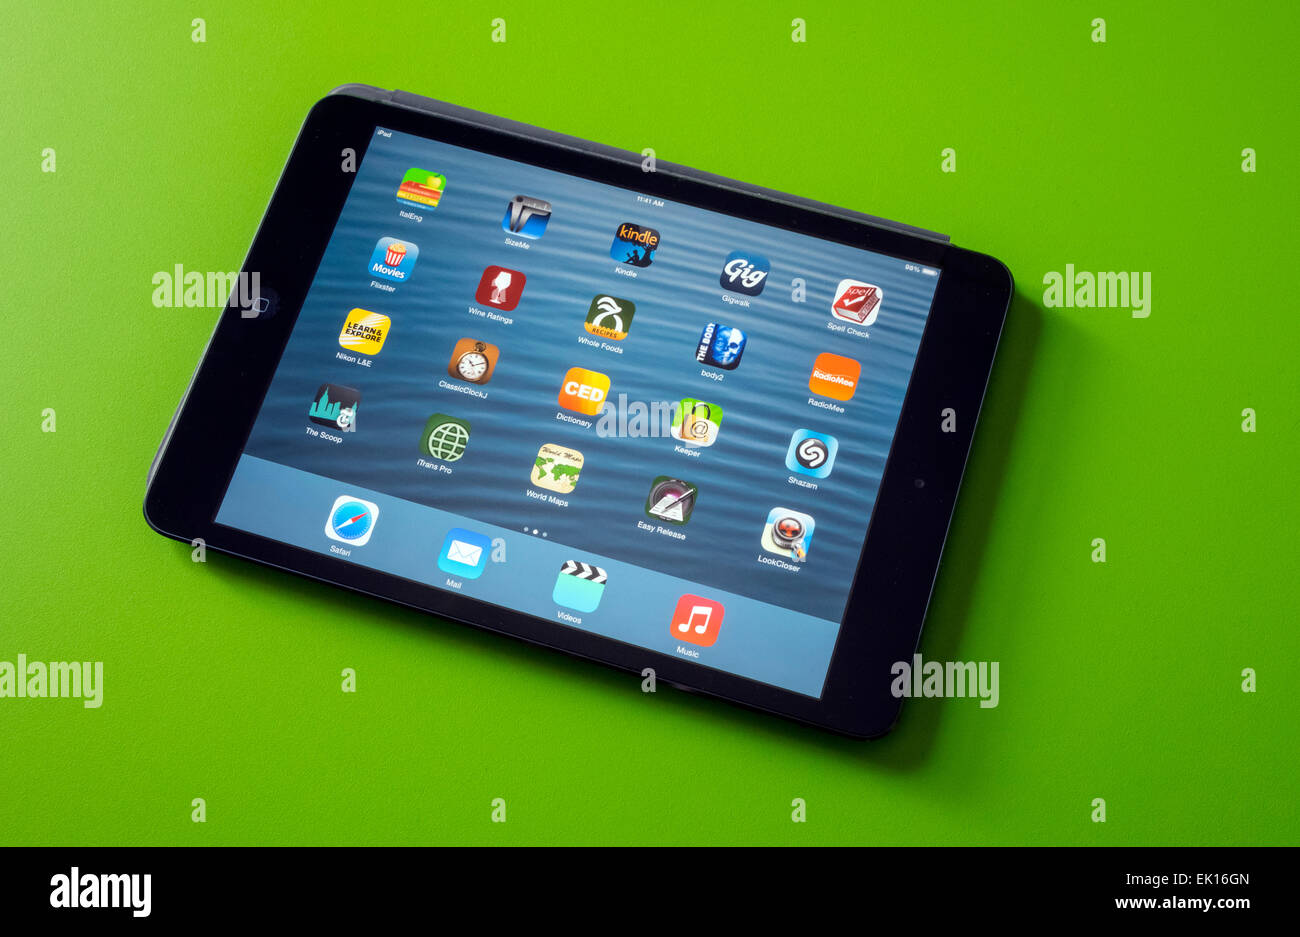 Apple iPad mini showing the home page with a selection of apps - Stock Image